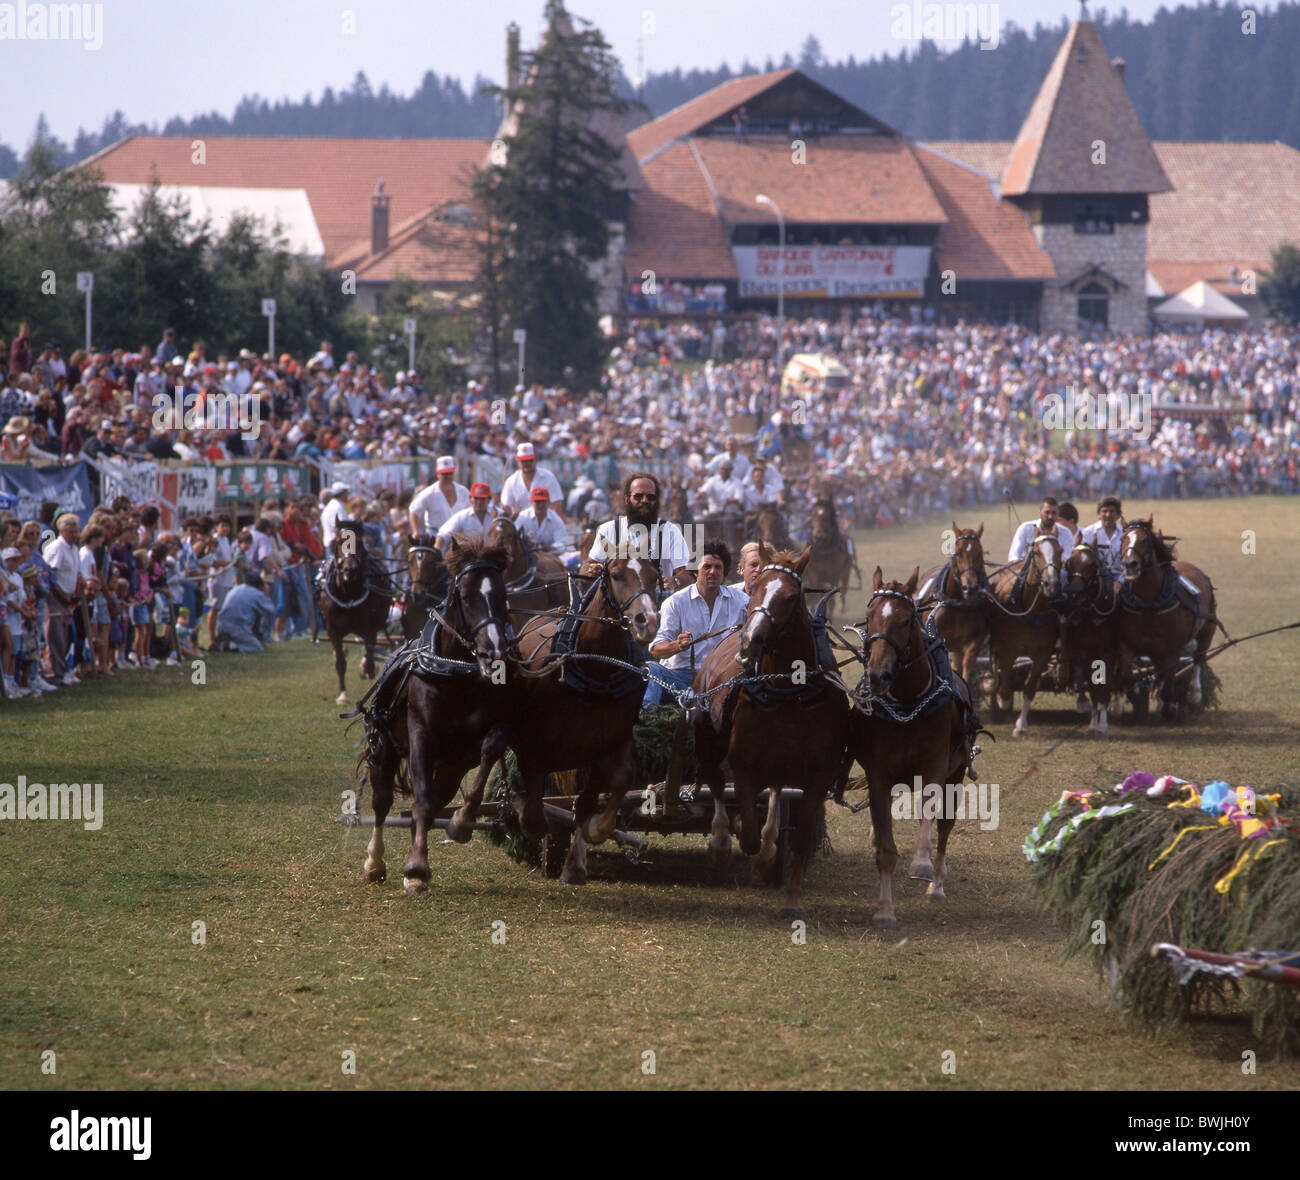 horse-racing horse market Marché-Concours national des chevaux car runnings spectators competition coaches - Stock Image